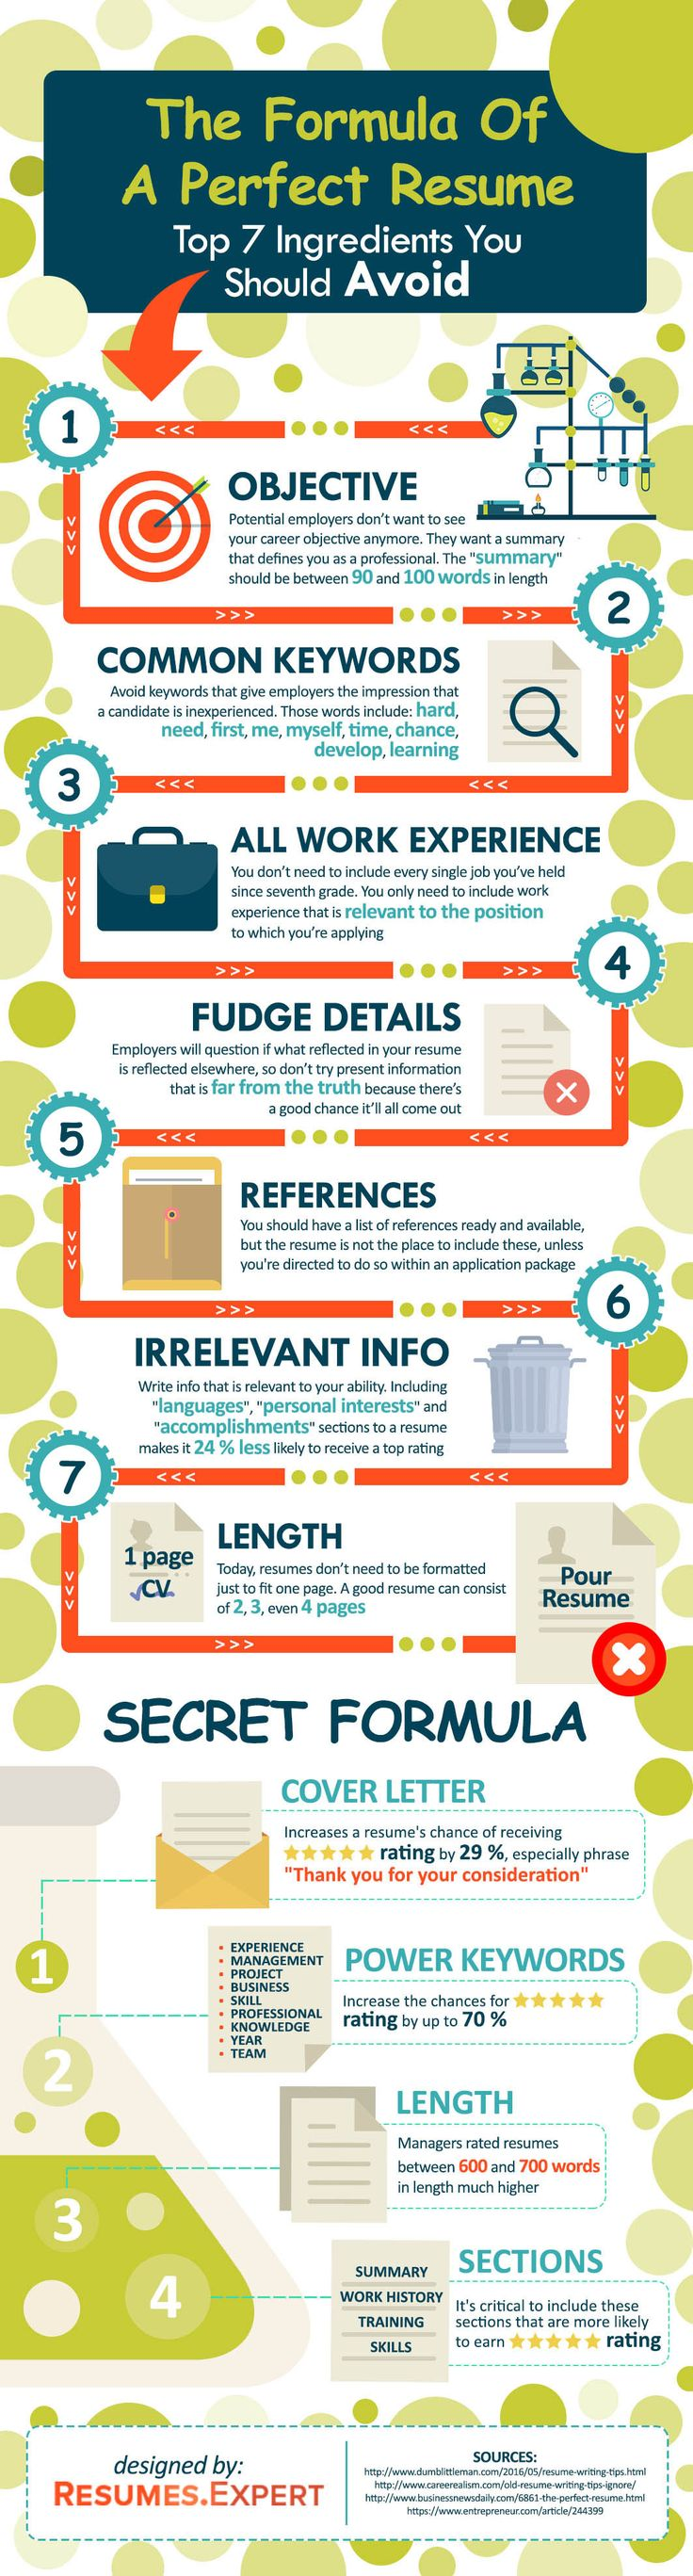 The Formula of a Perfect Resume #Infographic #Career #Resume